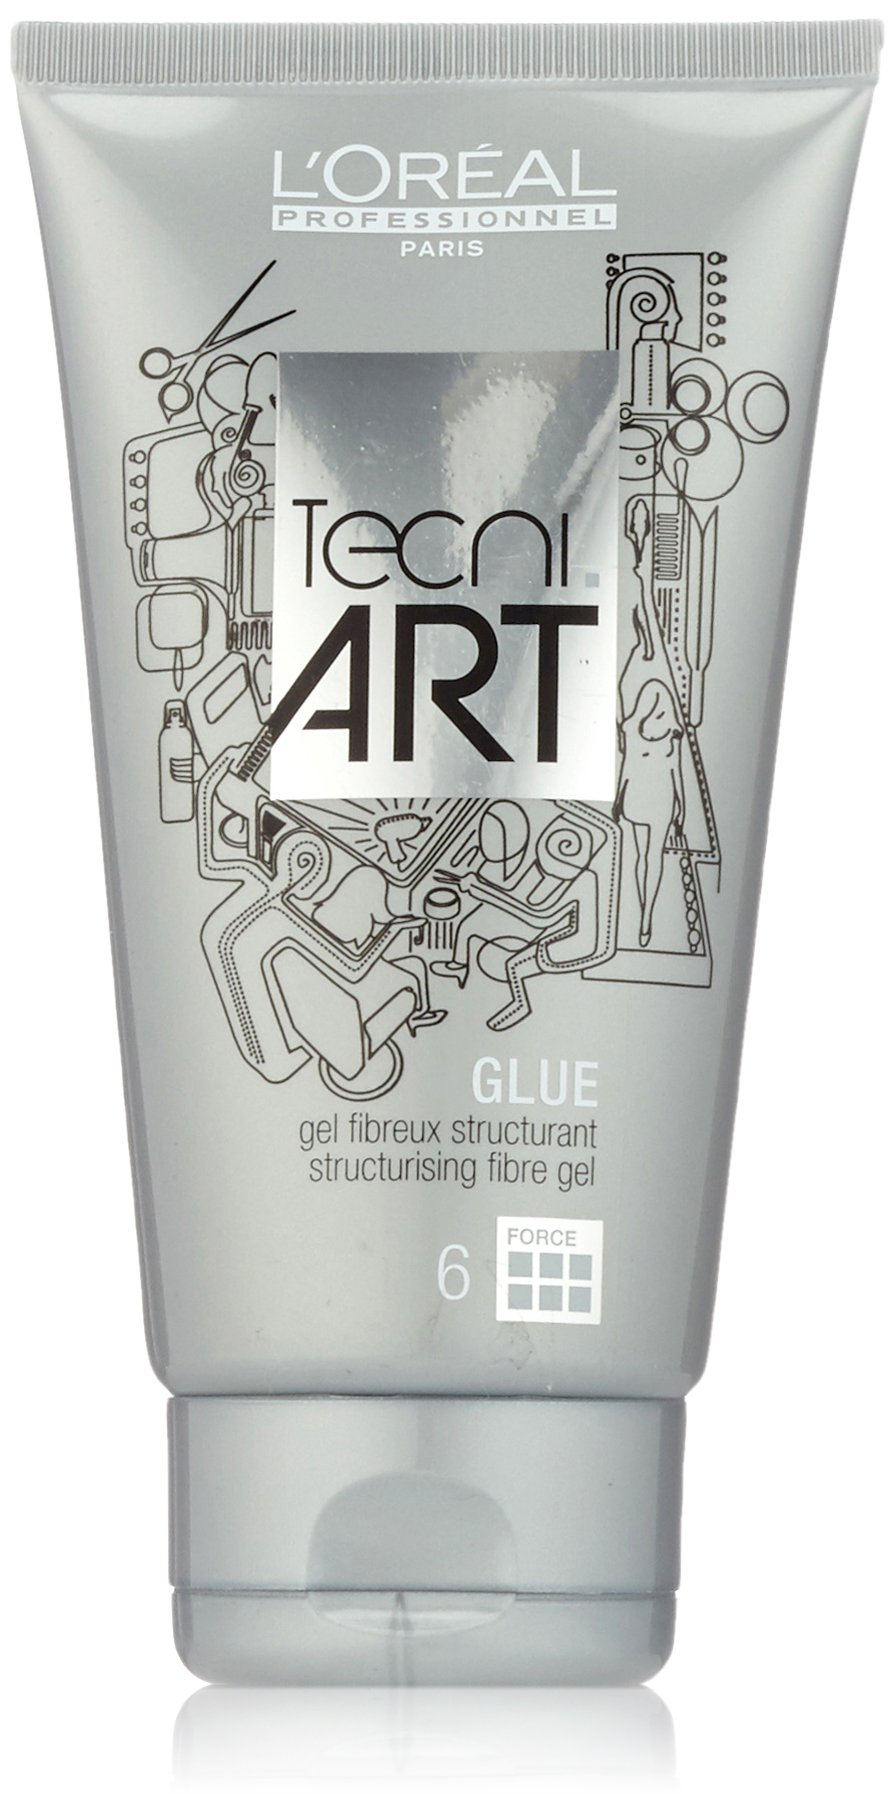 L'Oreal Professional Tecni.Art A Head Glue Structurising Fiber Gel, 5 Ounce